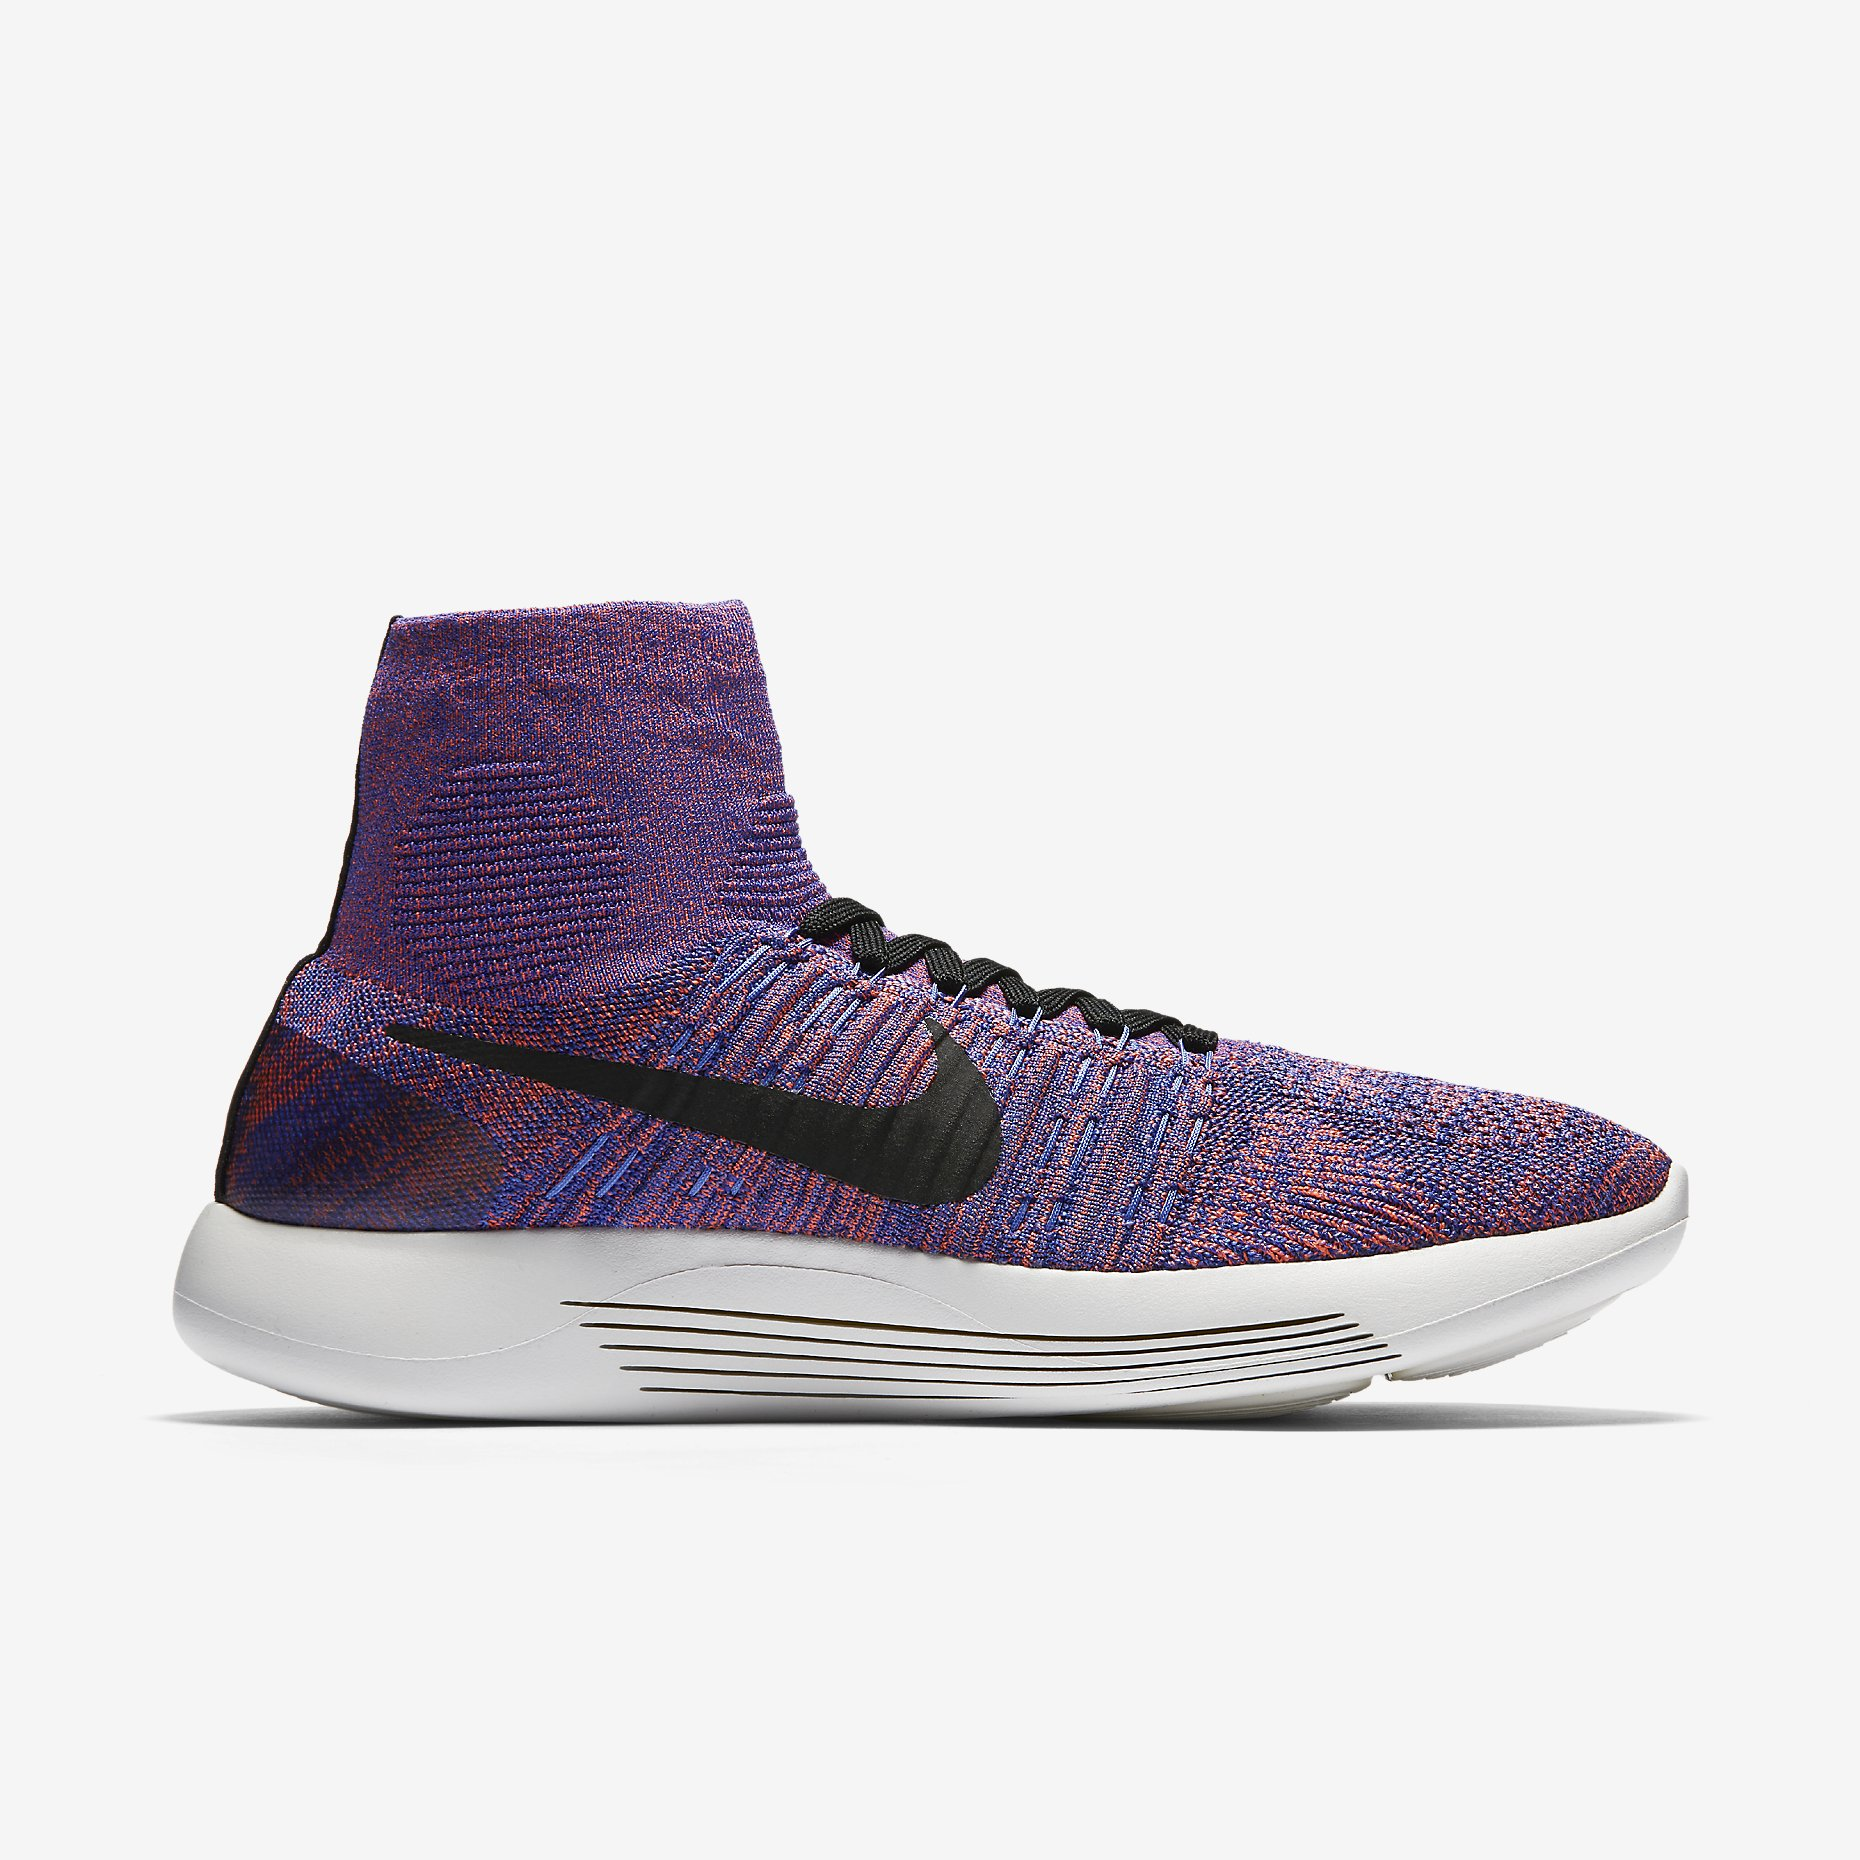 3e2181dc1159d Nike LunarEpic Flyknit - Alton Sports Running Specialists